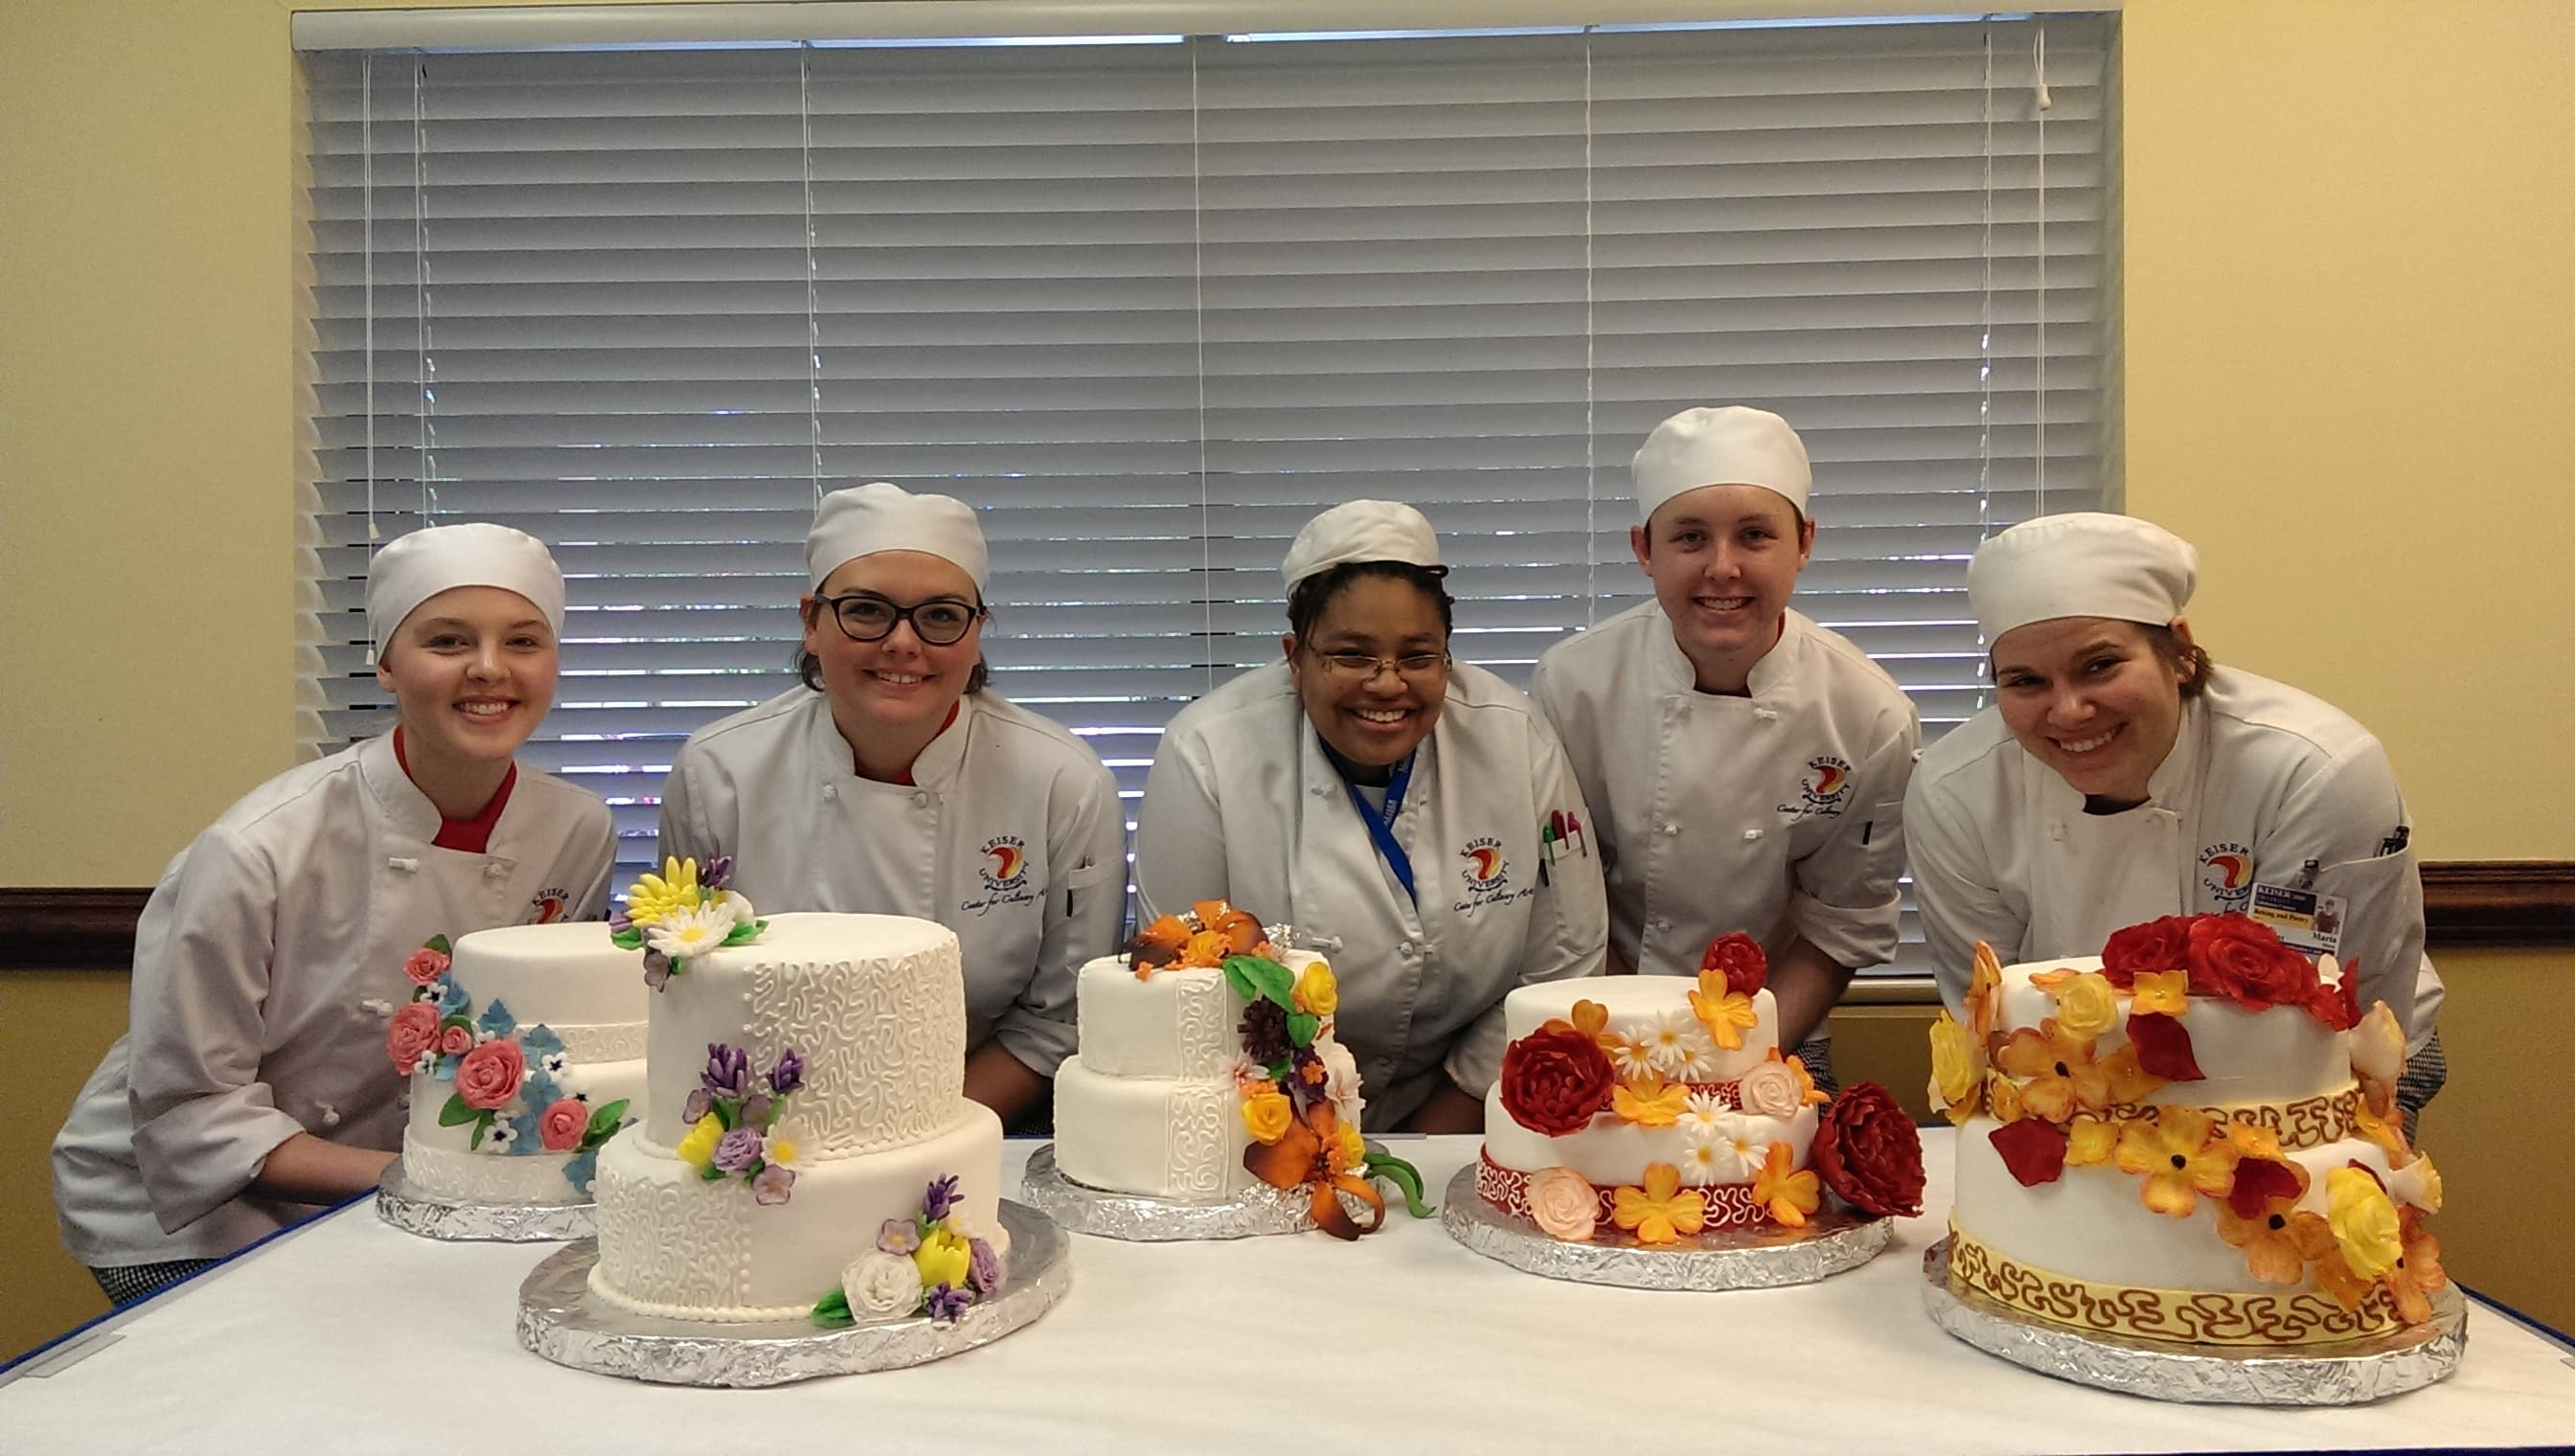 Tallahassee Culinary Arts Students Work on Wedding Cakes